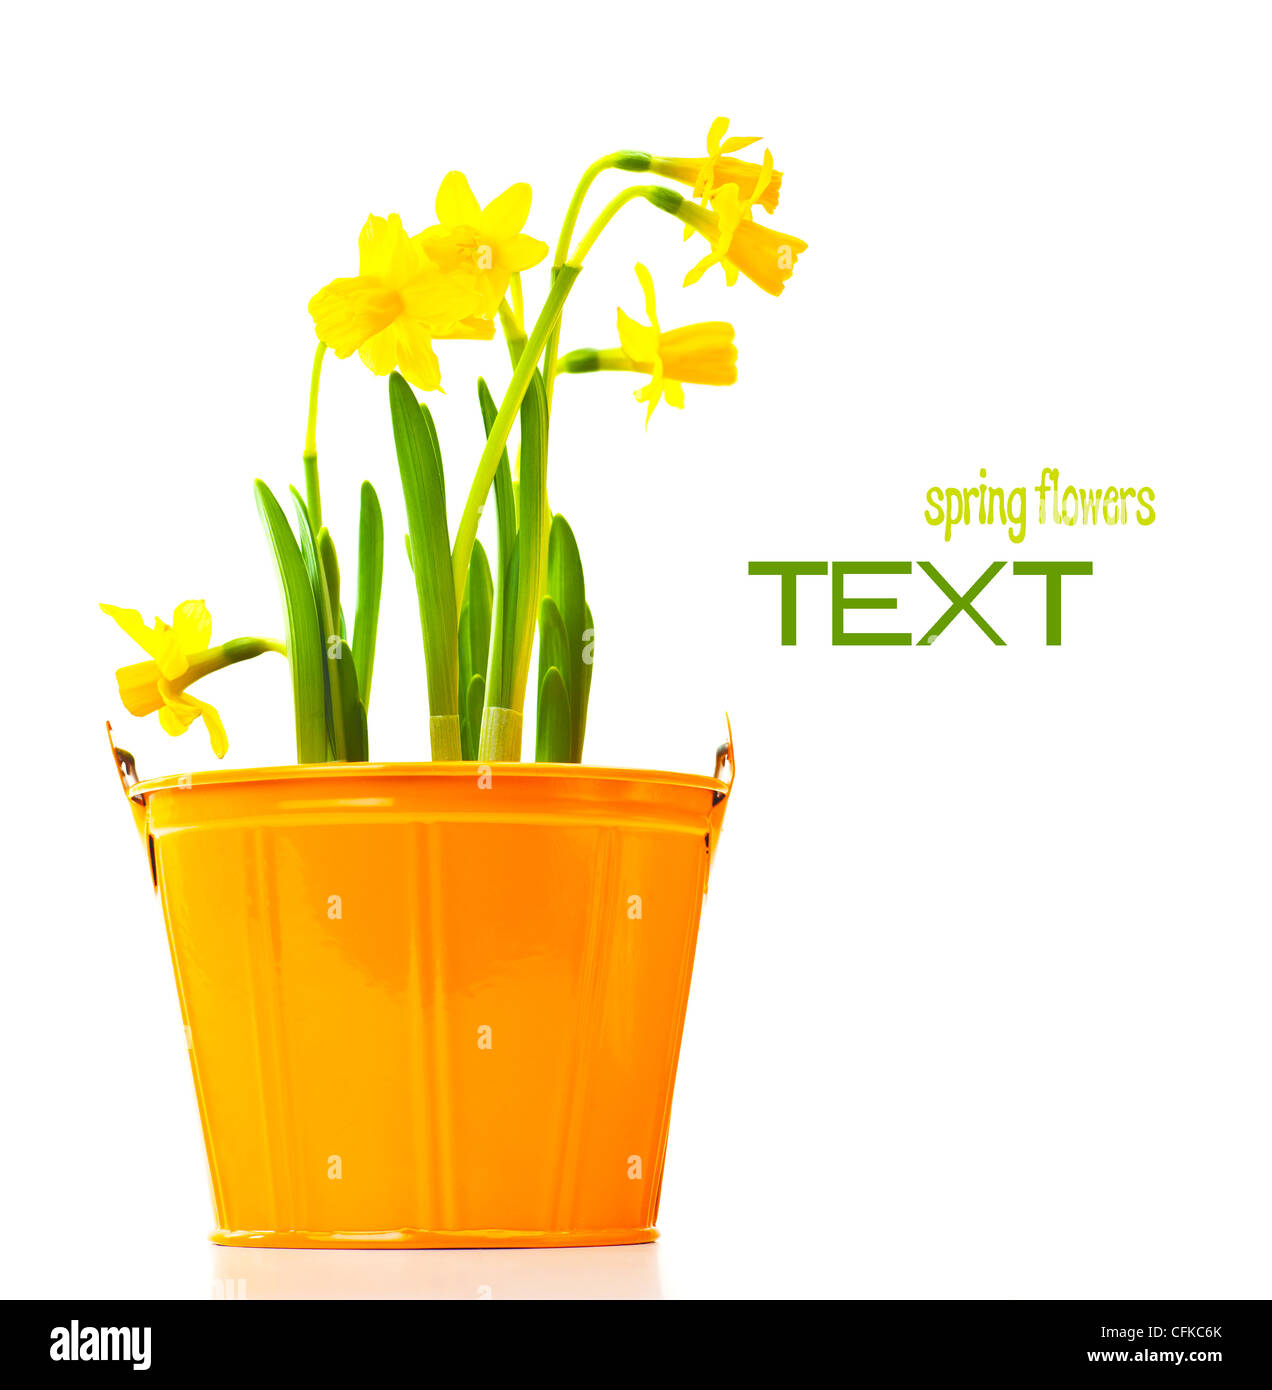 Pot of narcissus flower fresh spring plant easter and mothers day pot of narcissus flower fresh spring plant easter and mothers day gift vase of yellow flowers isolated over white background mightylinksfo